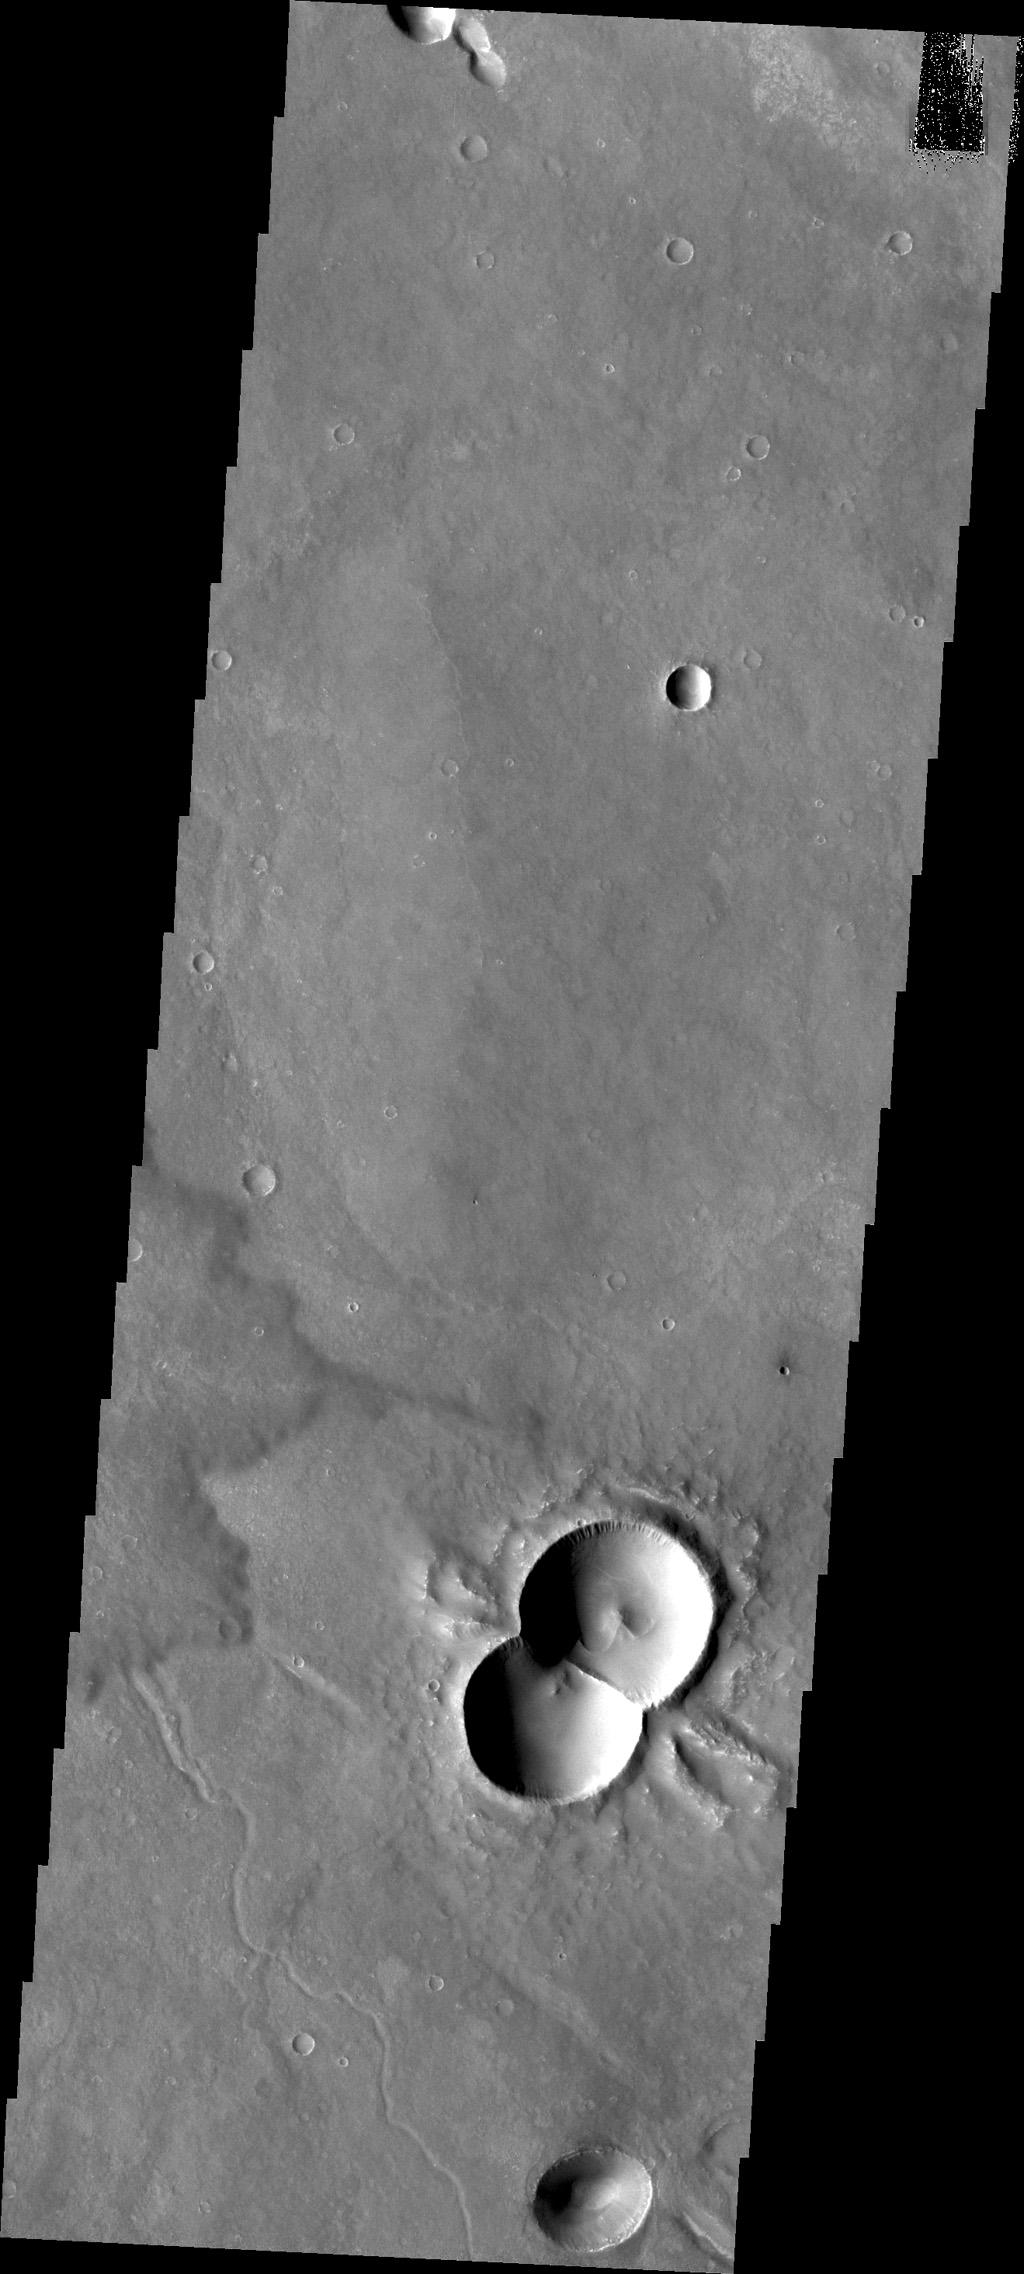 This doublet crater was formed when two meteorites impacted at the same time. The shock waves interact to form the straight central rim and the 'wings' of ejecta on the outside of the rims. This image is from NASA's Mars Odyssey.